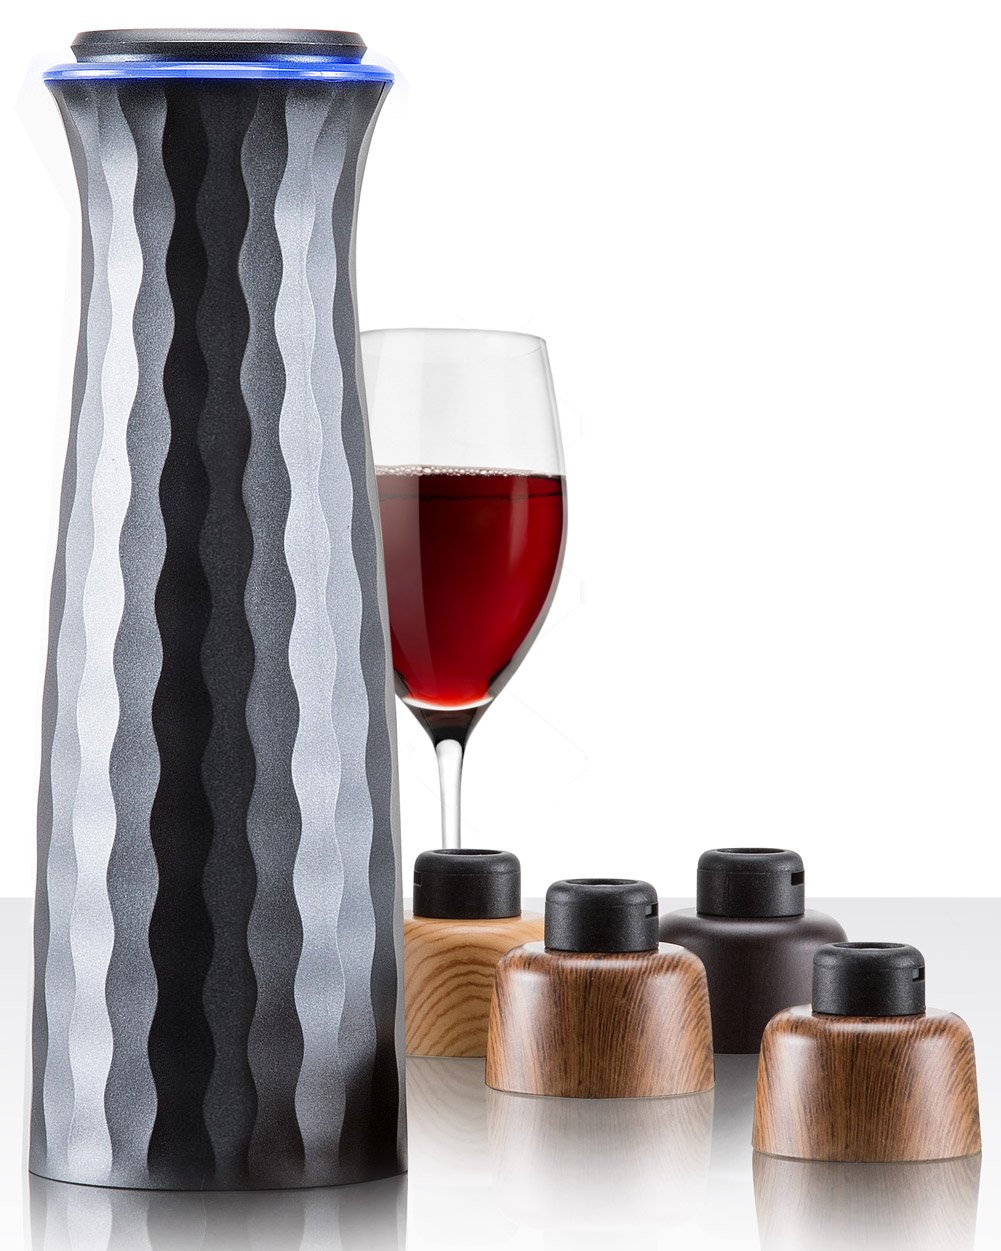 Electric Wine Saver Stopper Set: Mumba Wine Vacuum Sealer with Accessories - Automatic Air Seal Pump Machine and 4 Reusable Stoppers - Bottle Preserver Wine Accessory Kit for Men/Women Wine Lovers